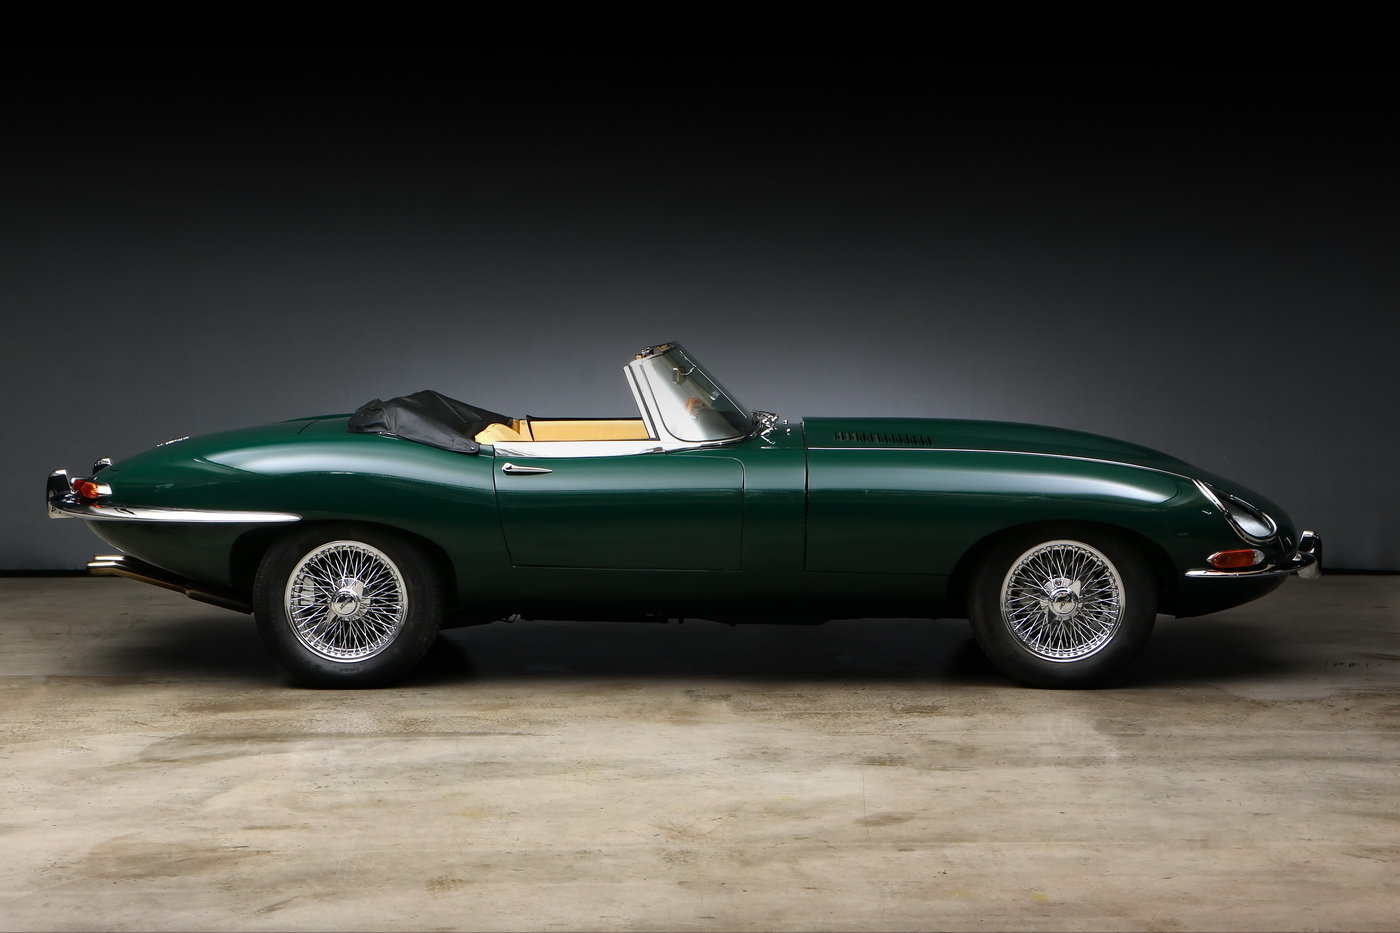 1965 Jaguar E-Type 1 Series 4.2 ltr Roadster For Sale (picture 2 of 6)